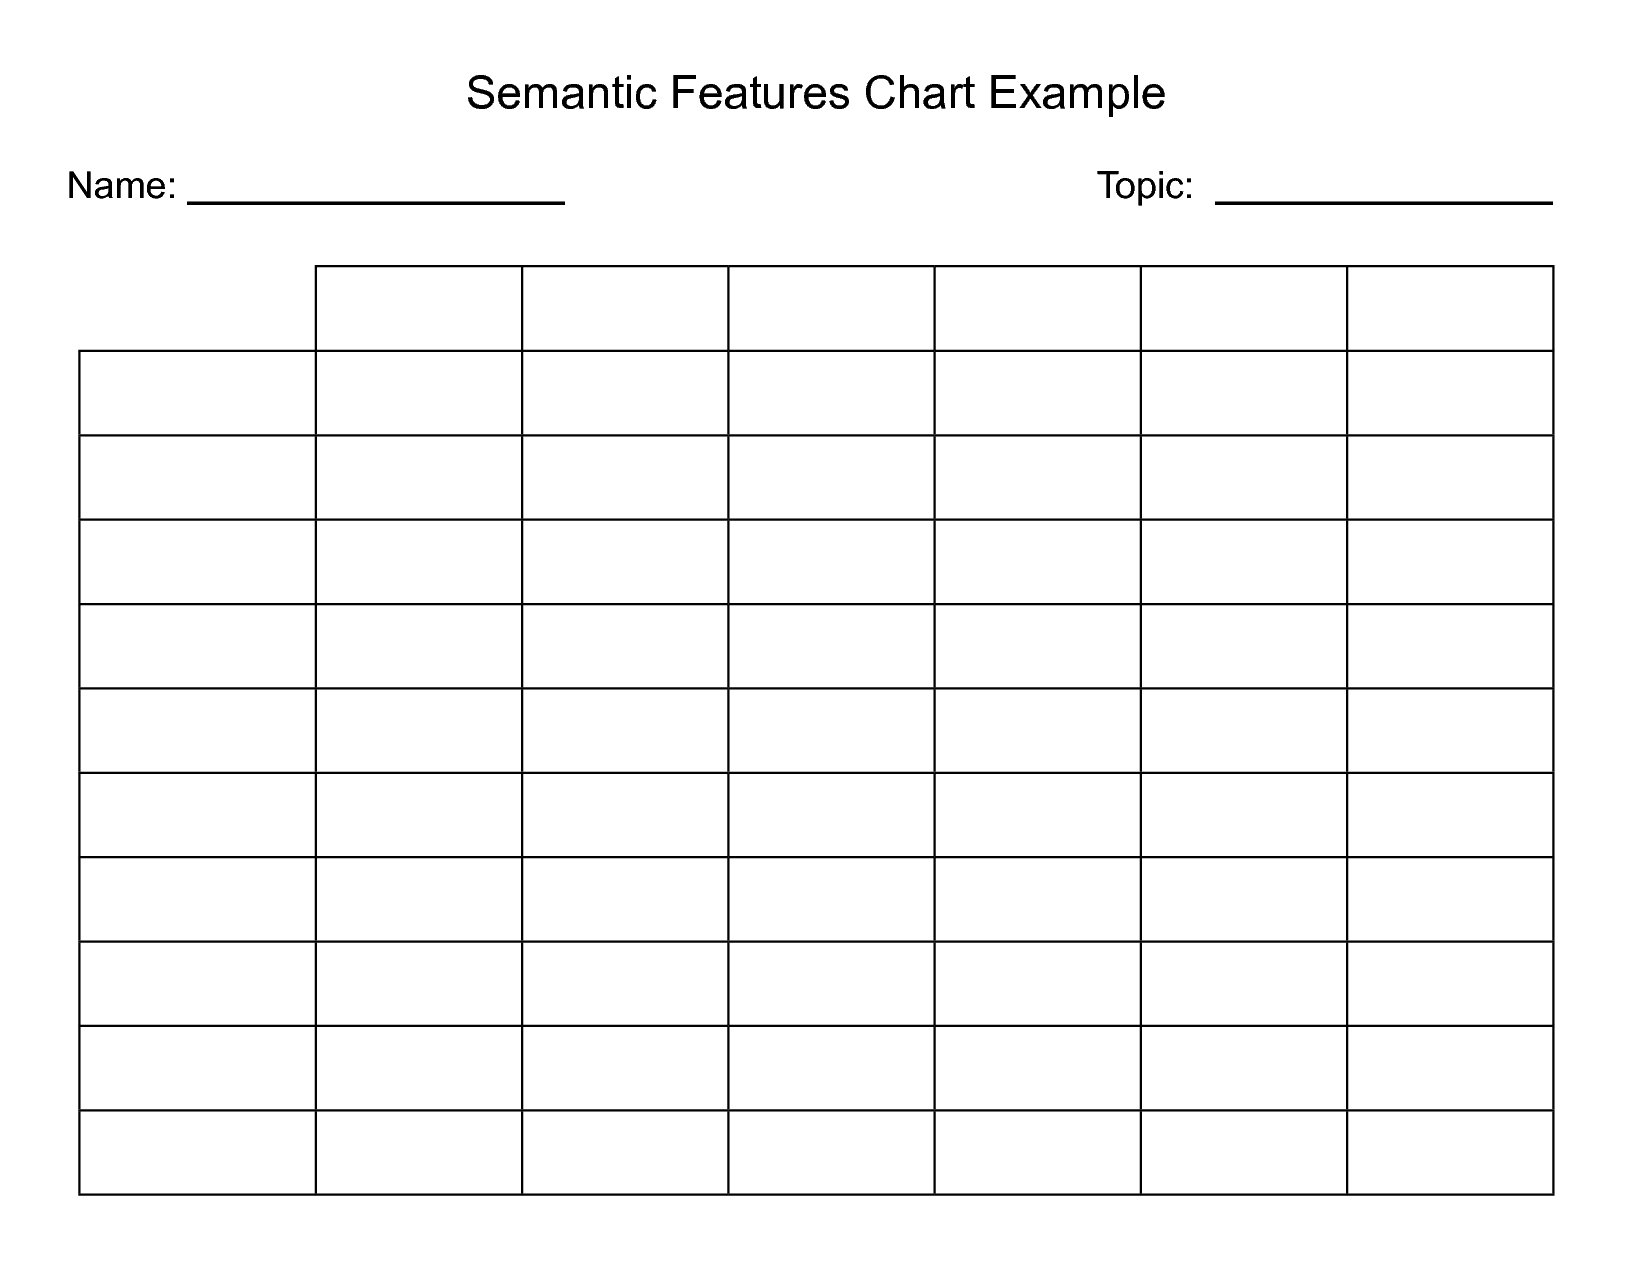 Worksheets Freckle Juice Worksheets semantic feature analysis google search classification scoop search